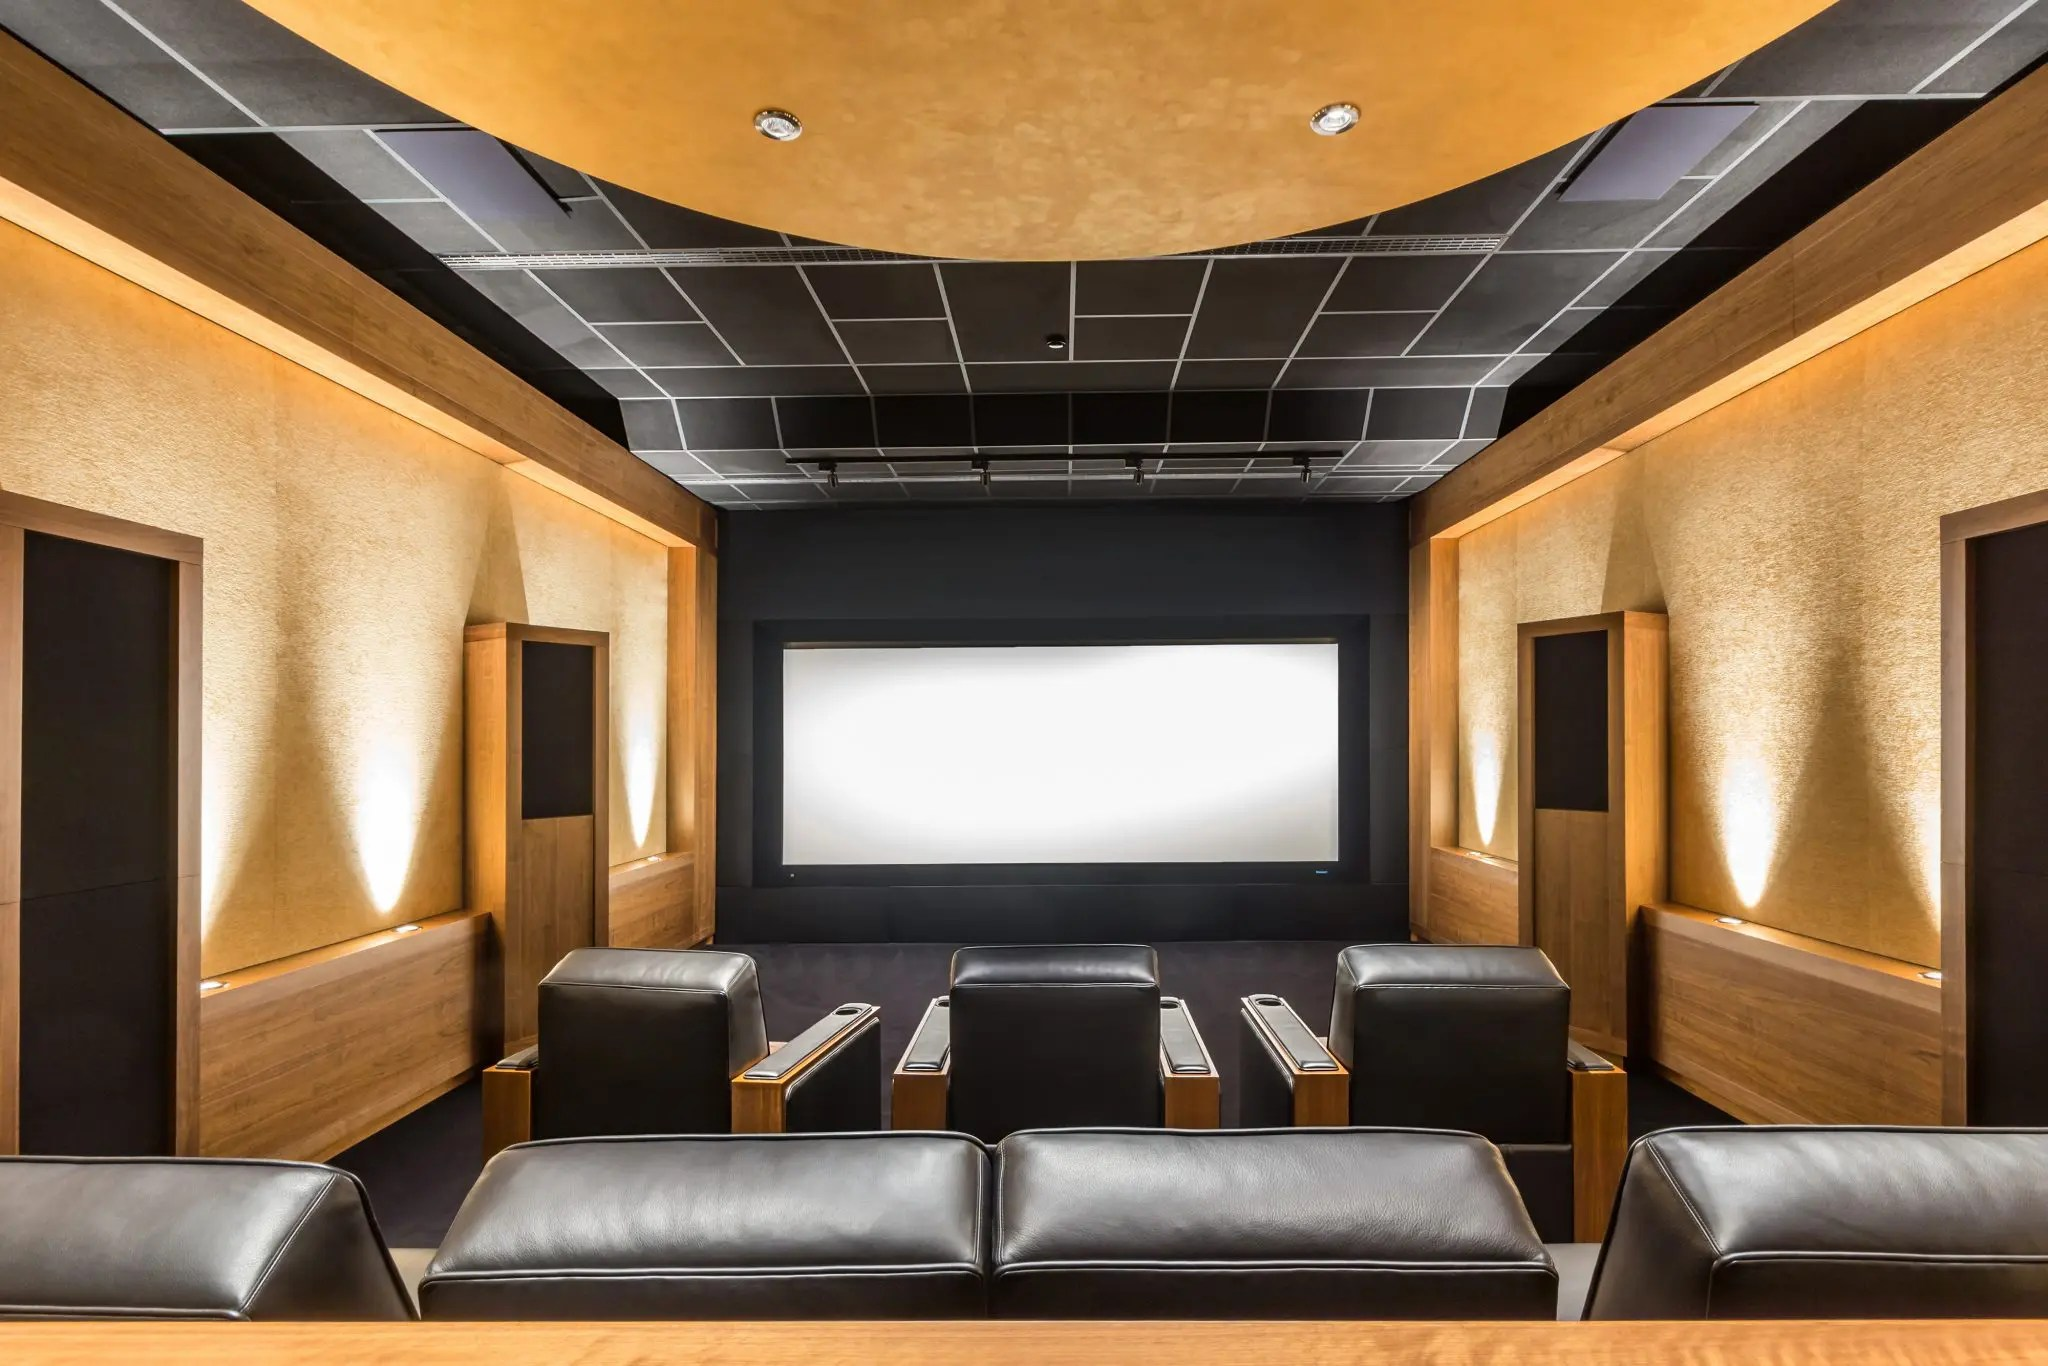 Stunning stylish privat theater. Luxury Home Cinema Room. Private Screening Room